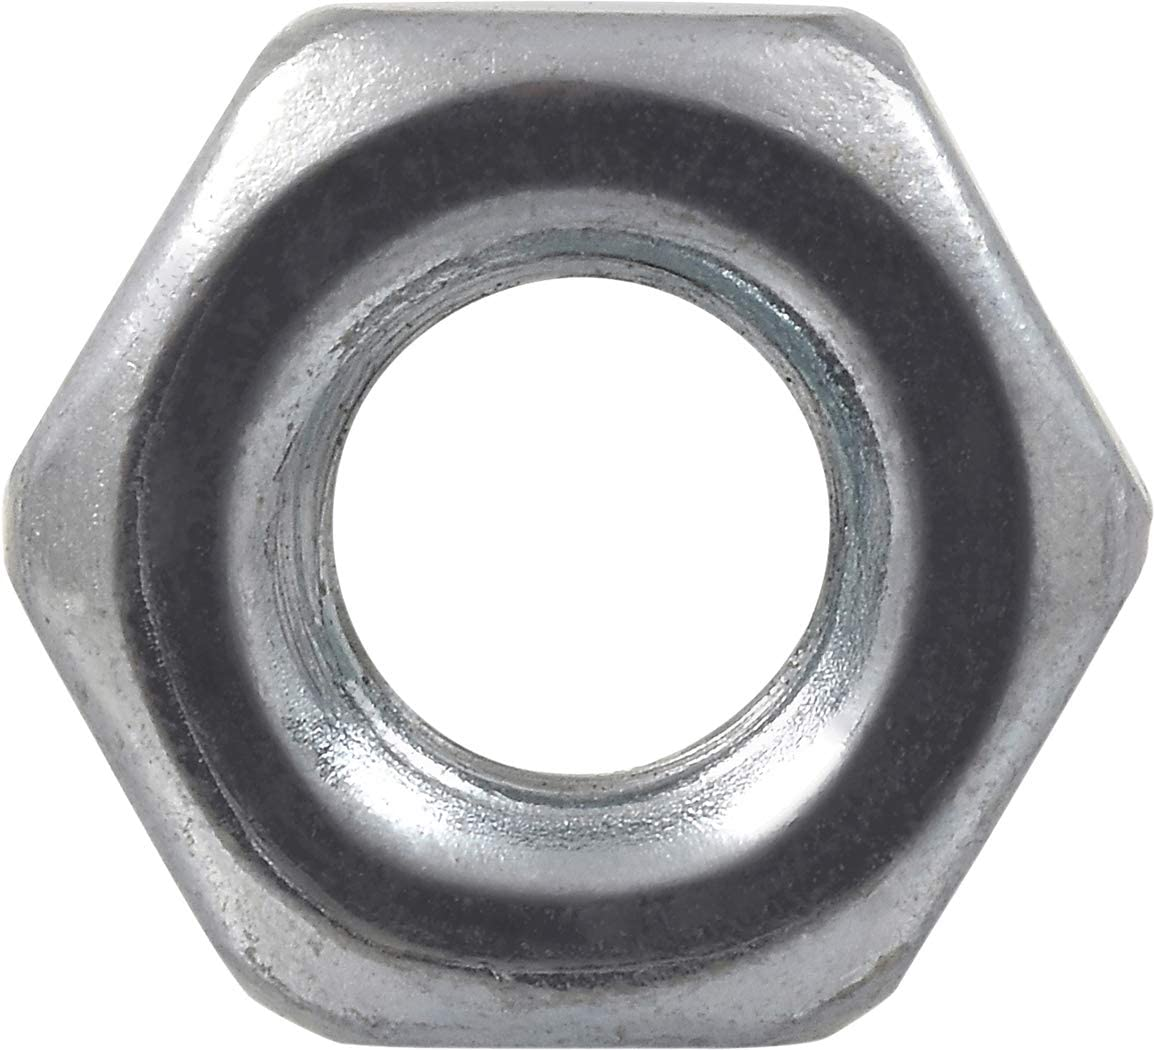 The Hillman Group 829952 6 by 32-Inch Stainless Steel Acorn Nut 100-Pack